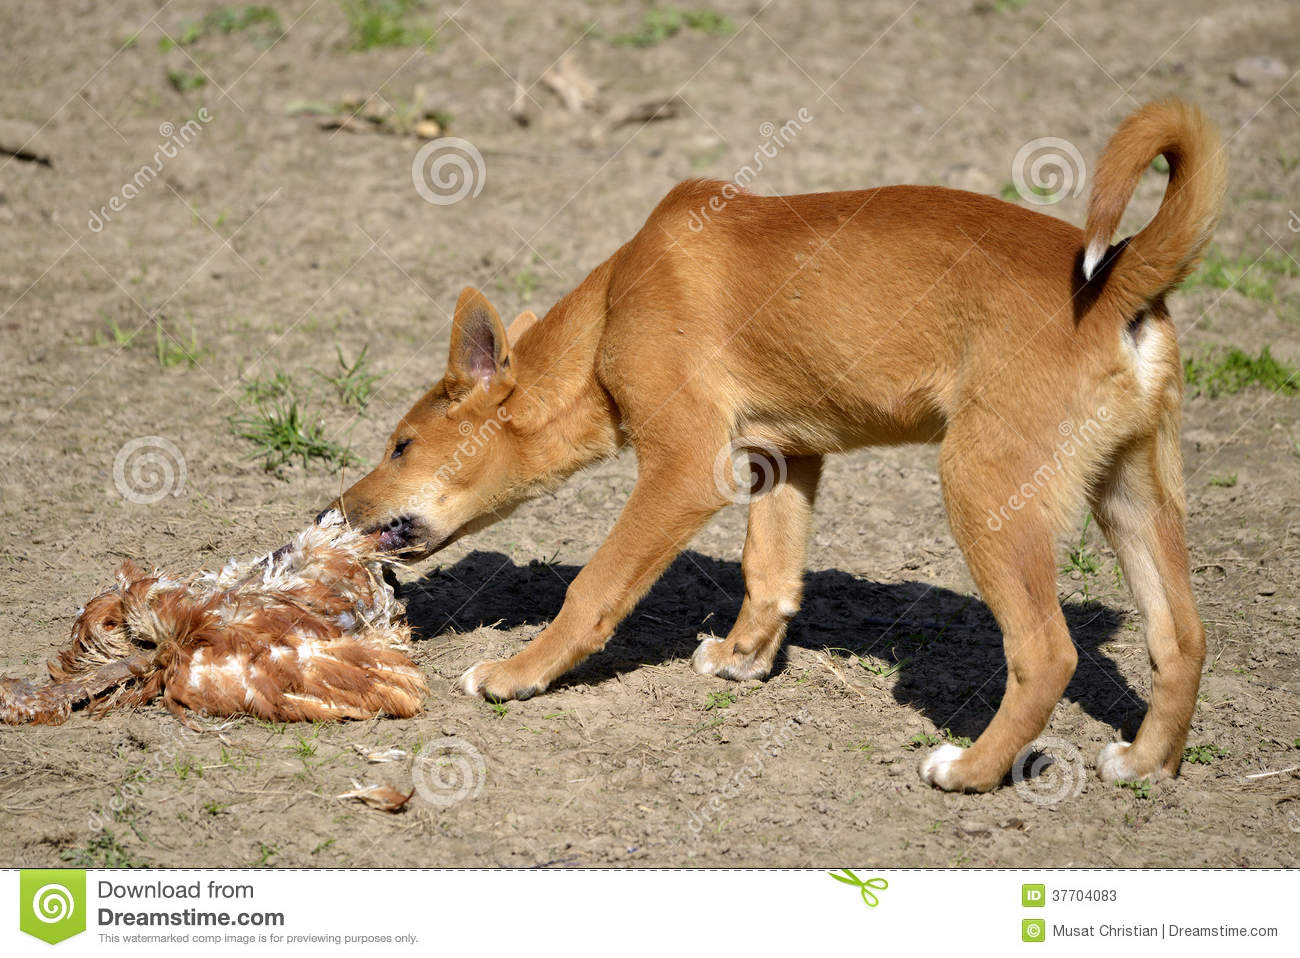 Dingo Eating Poultry Stock Photos - Image: 37704083